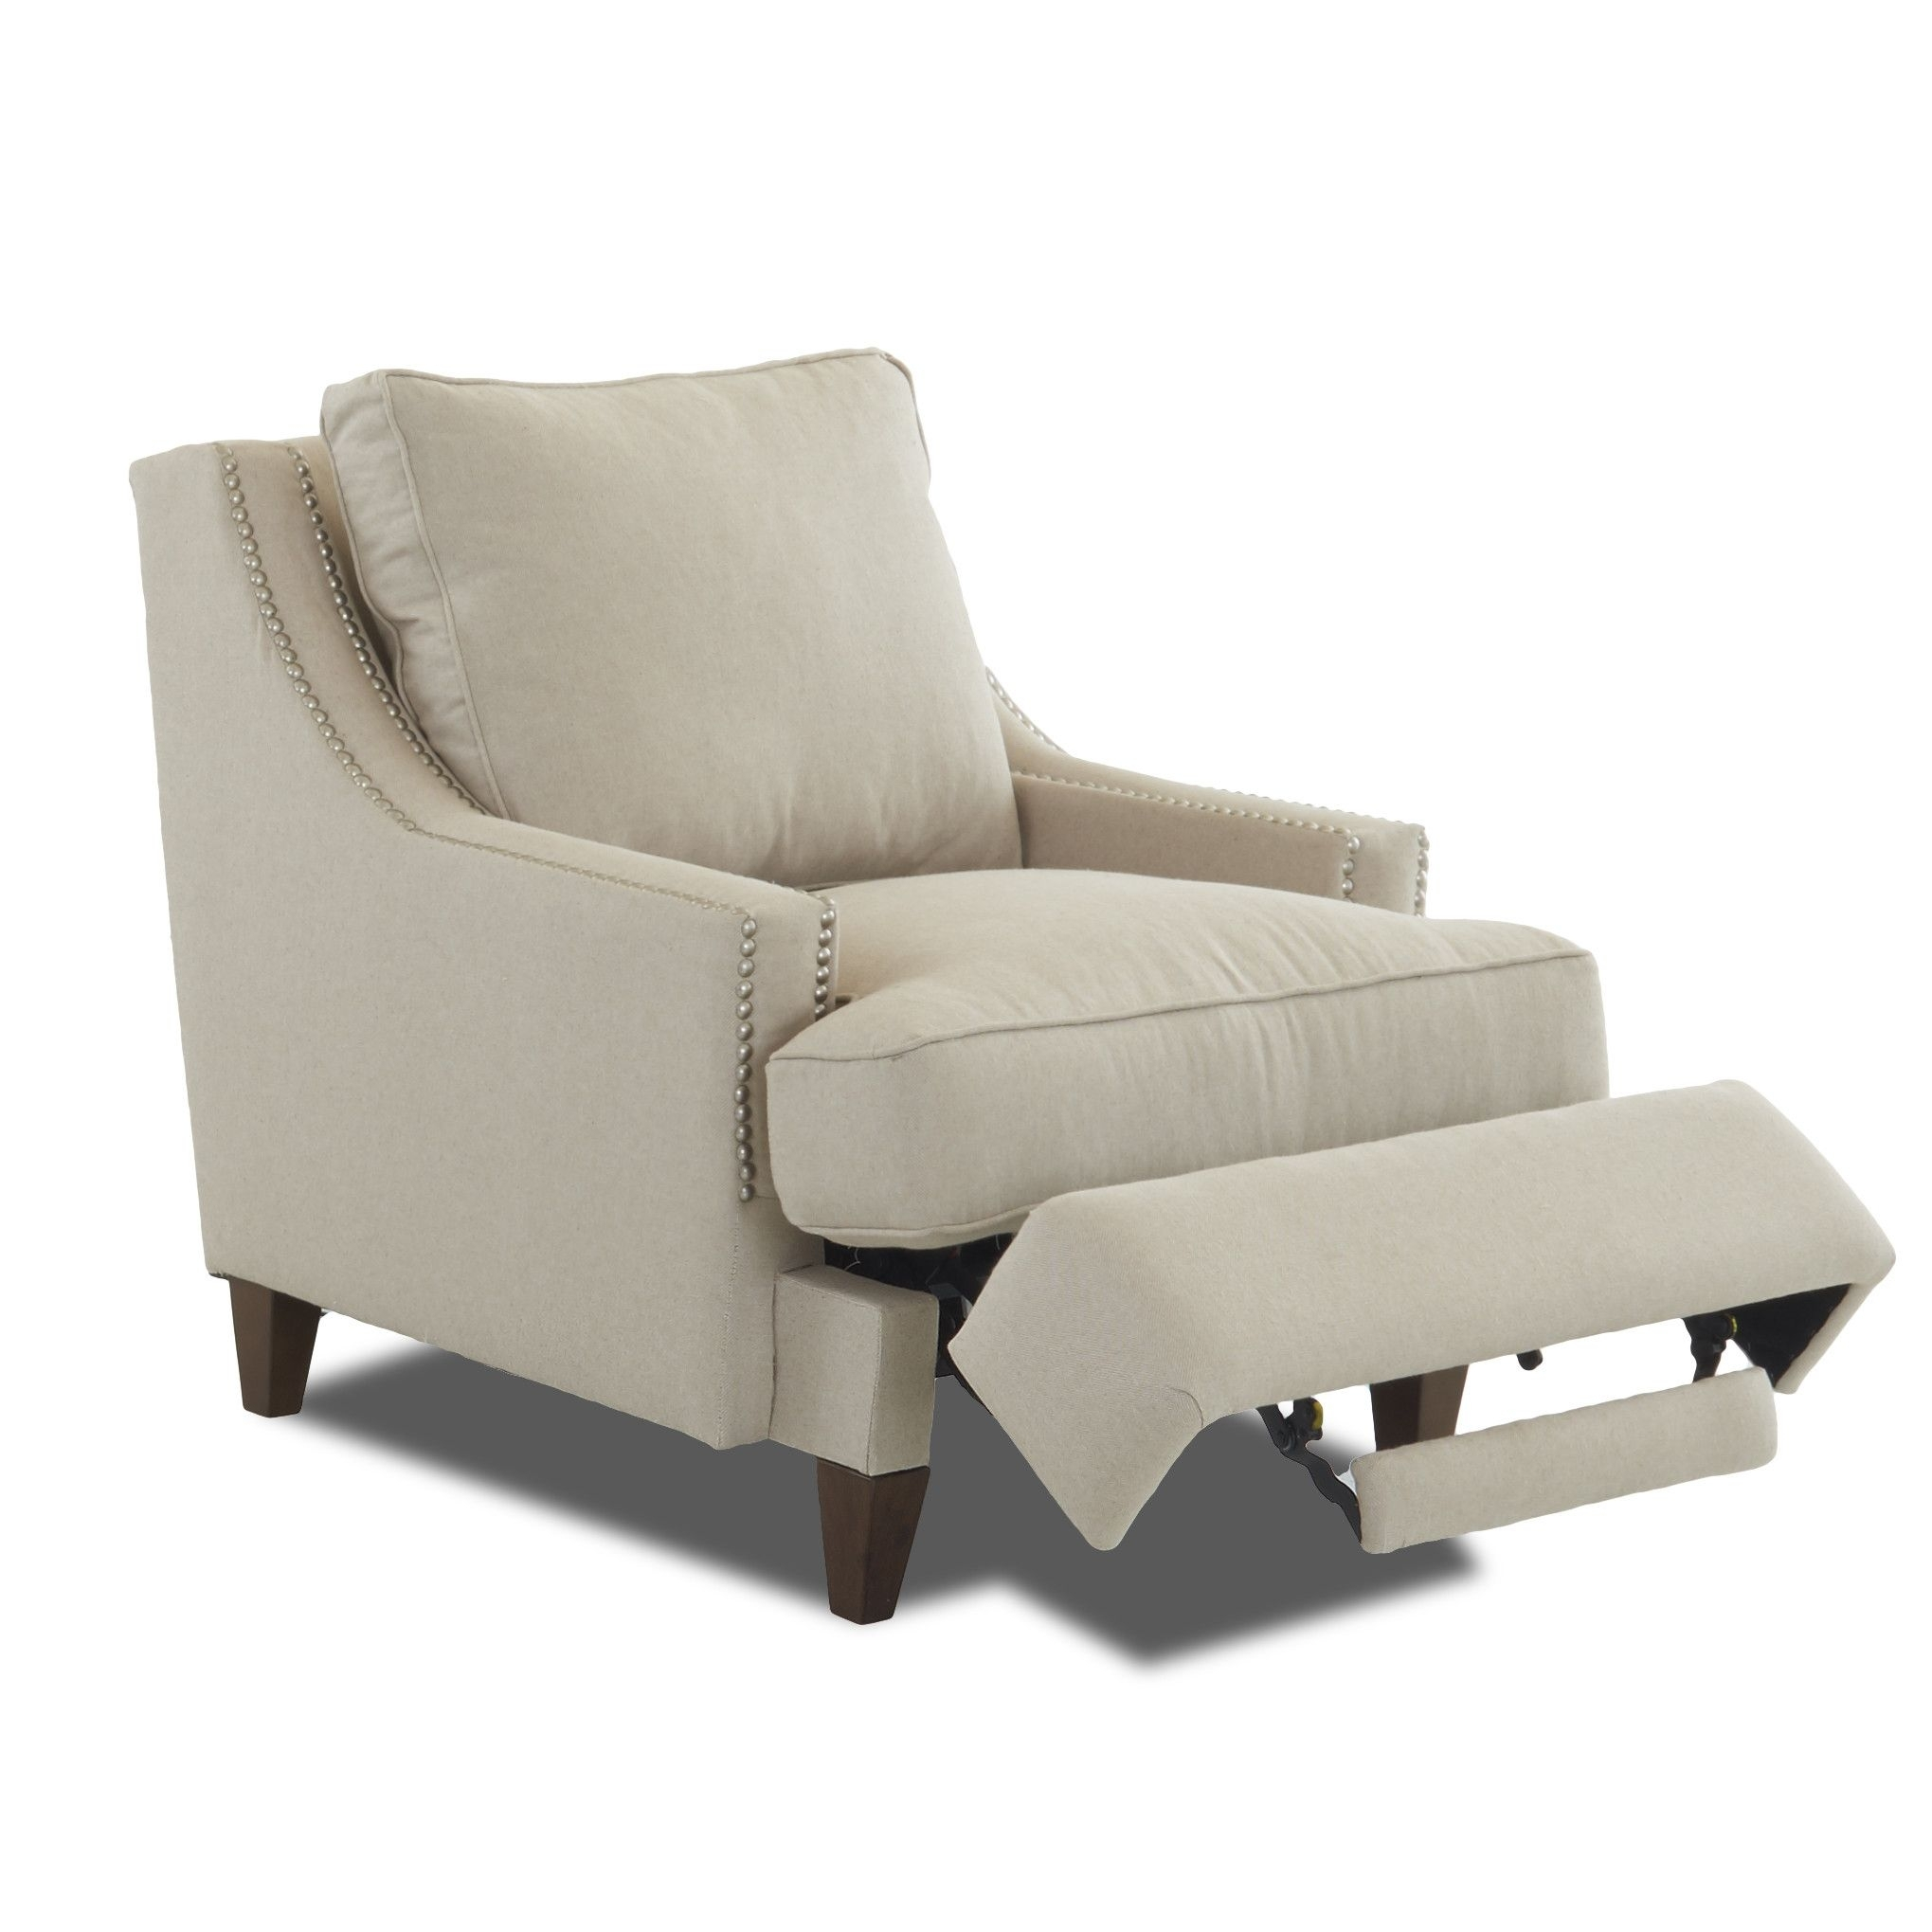 Tricia Power Recliner | For House #2 | Pinterest | Recliner, Chair in Travis Dk Grey Leather 6 Piece Power Reclining Sectionals With Power Headrest & Usb (Image 28 of 30)